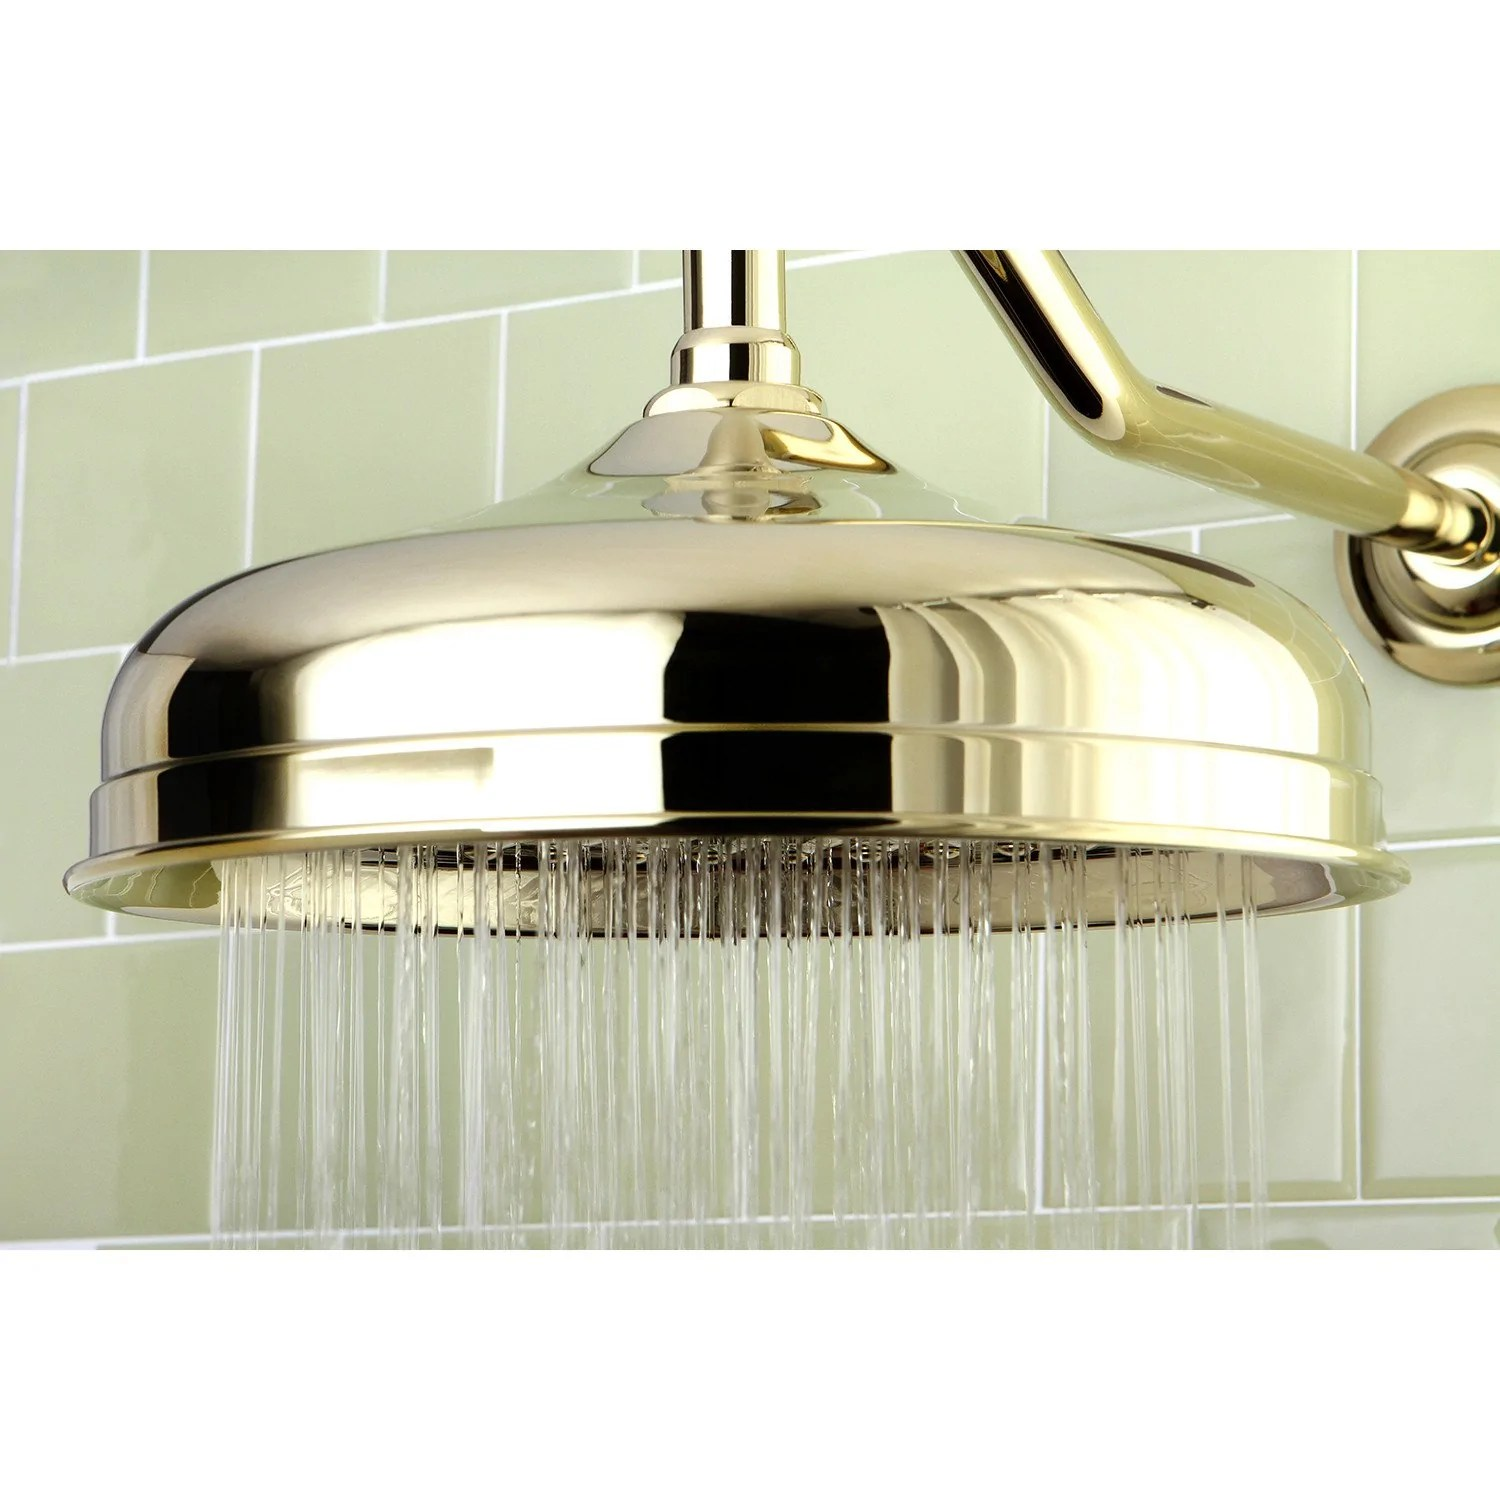 Bathroom Fixtures Polished Brass Shower Heads 10 Large Rain